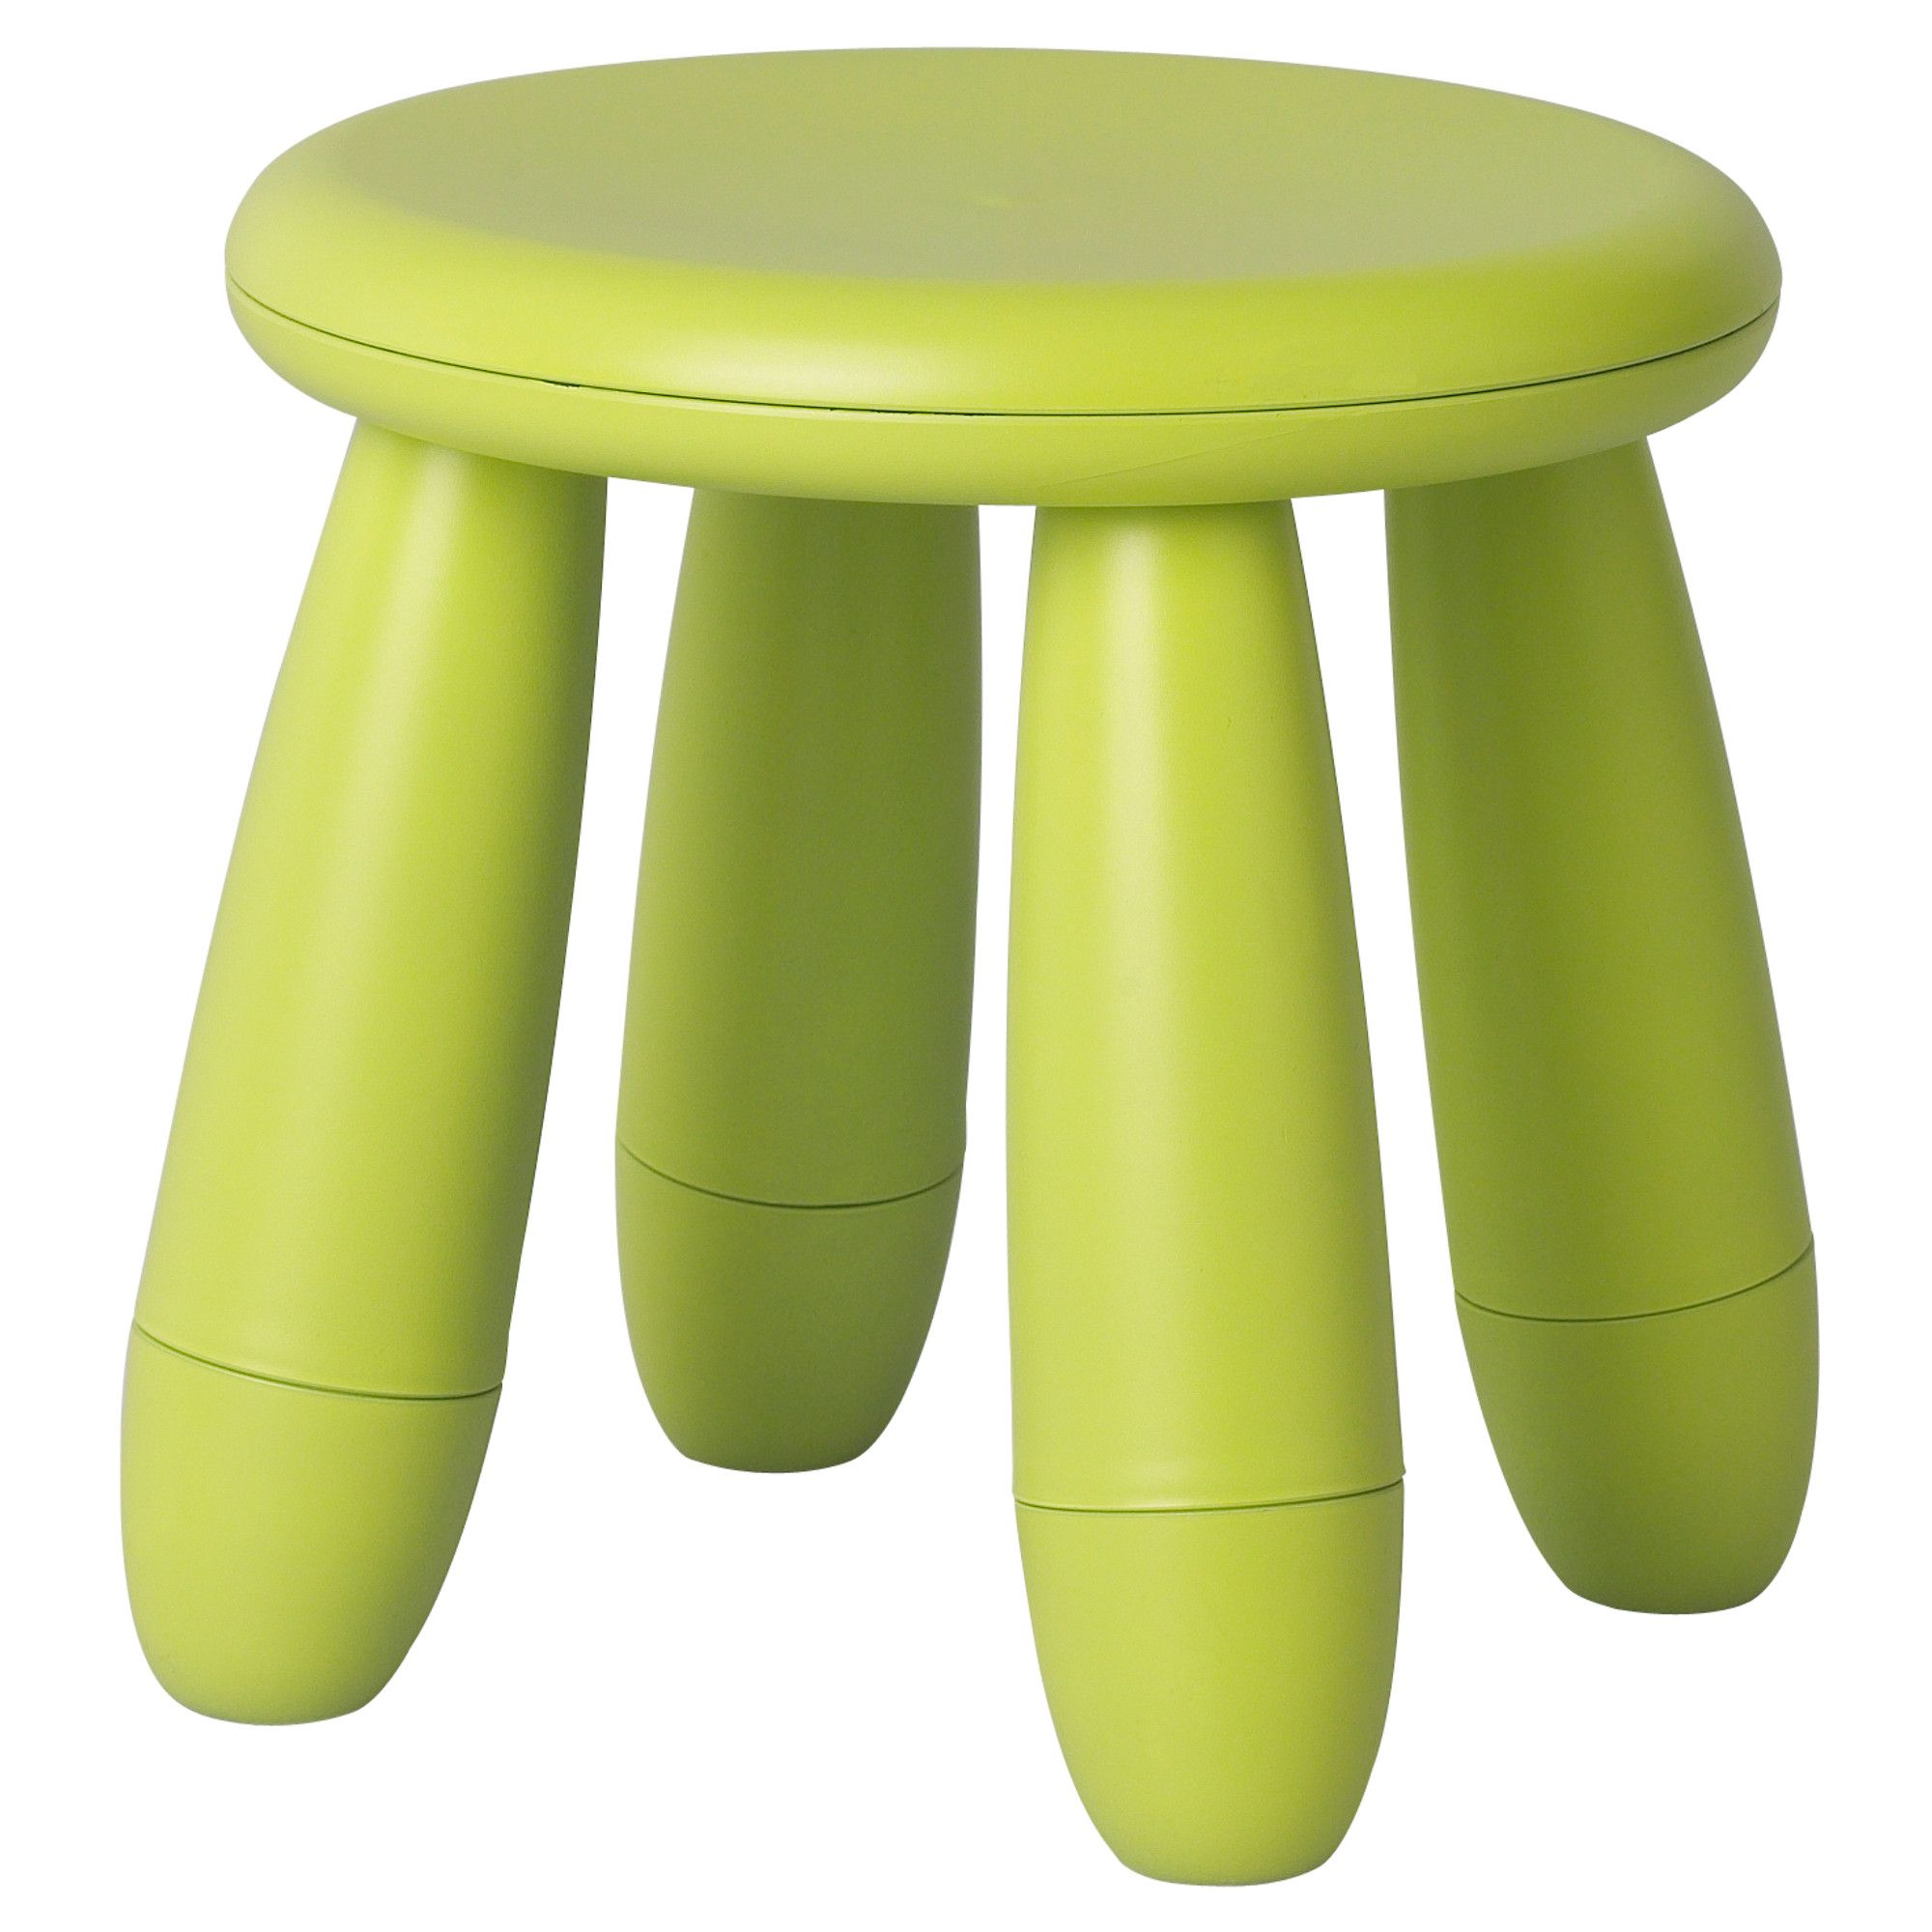 8 Mammut Childrens Stool Green Ikea Love These Stools In The